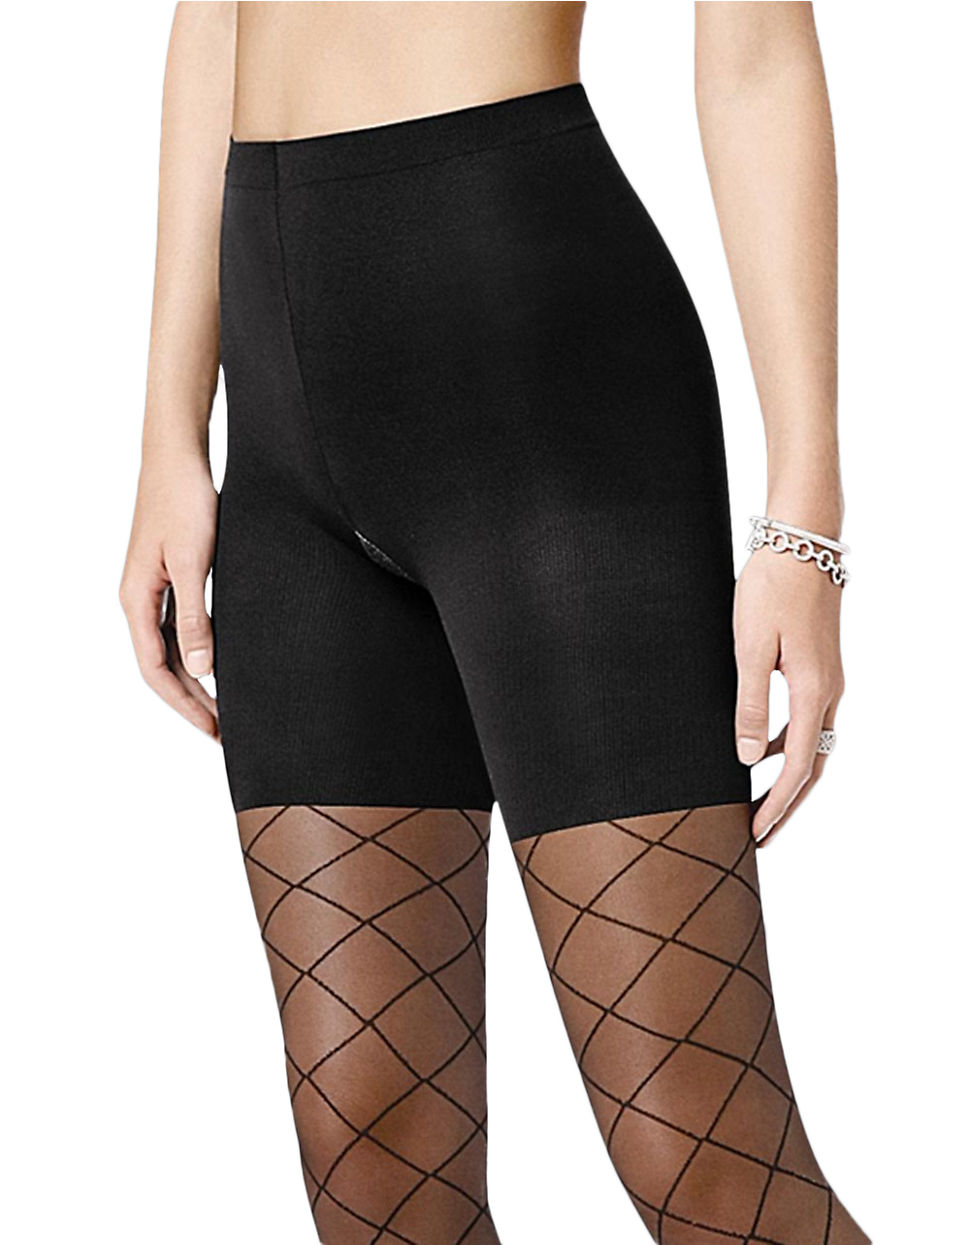 Spanx Hosiery and Shaping Hosiery